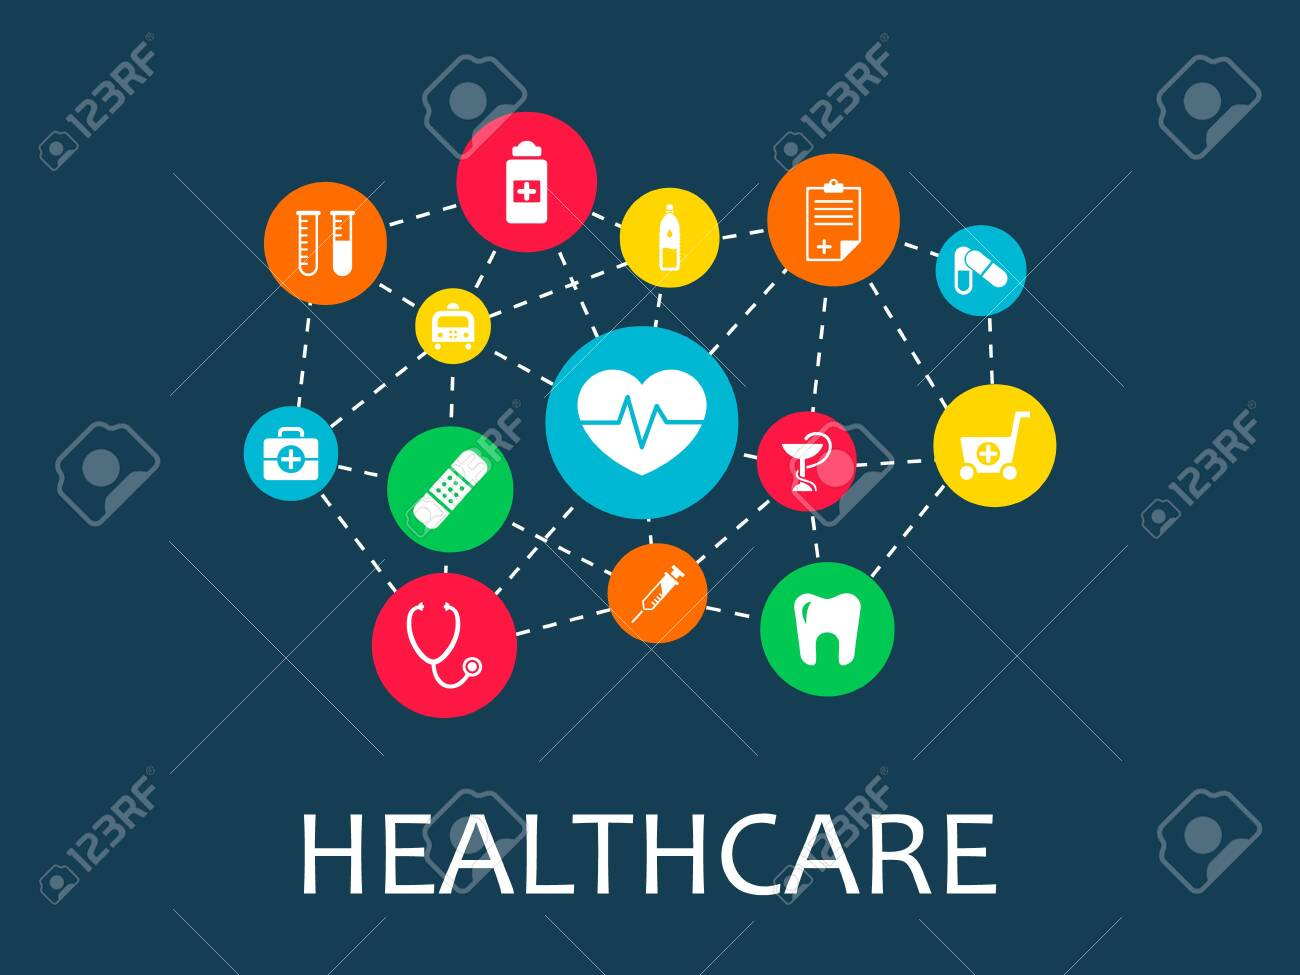 Healthcare mechanism concept. Abstract background with connected gears and icons for medical, health, strategy, care, medicine, network, social media and global concepts. Vector infographic - 122753440